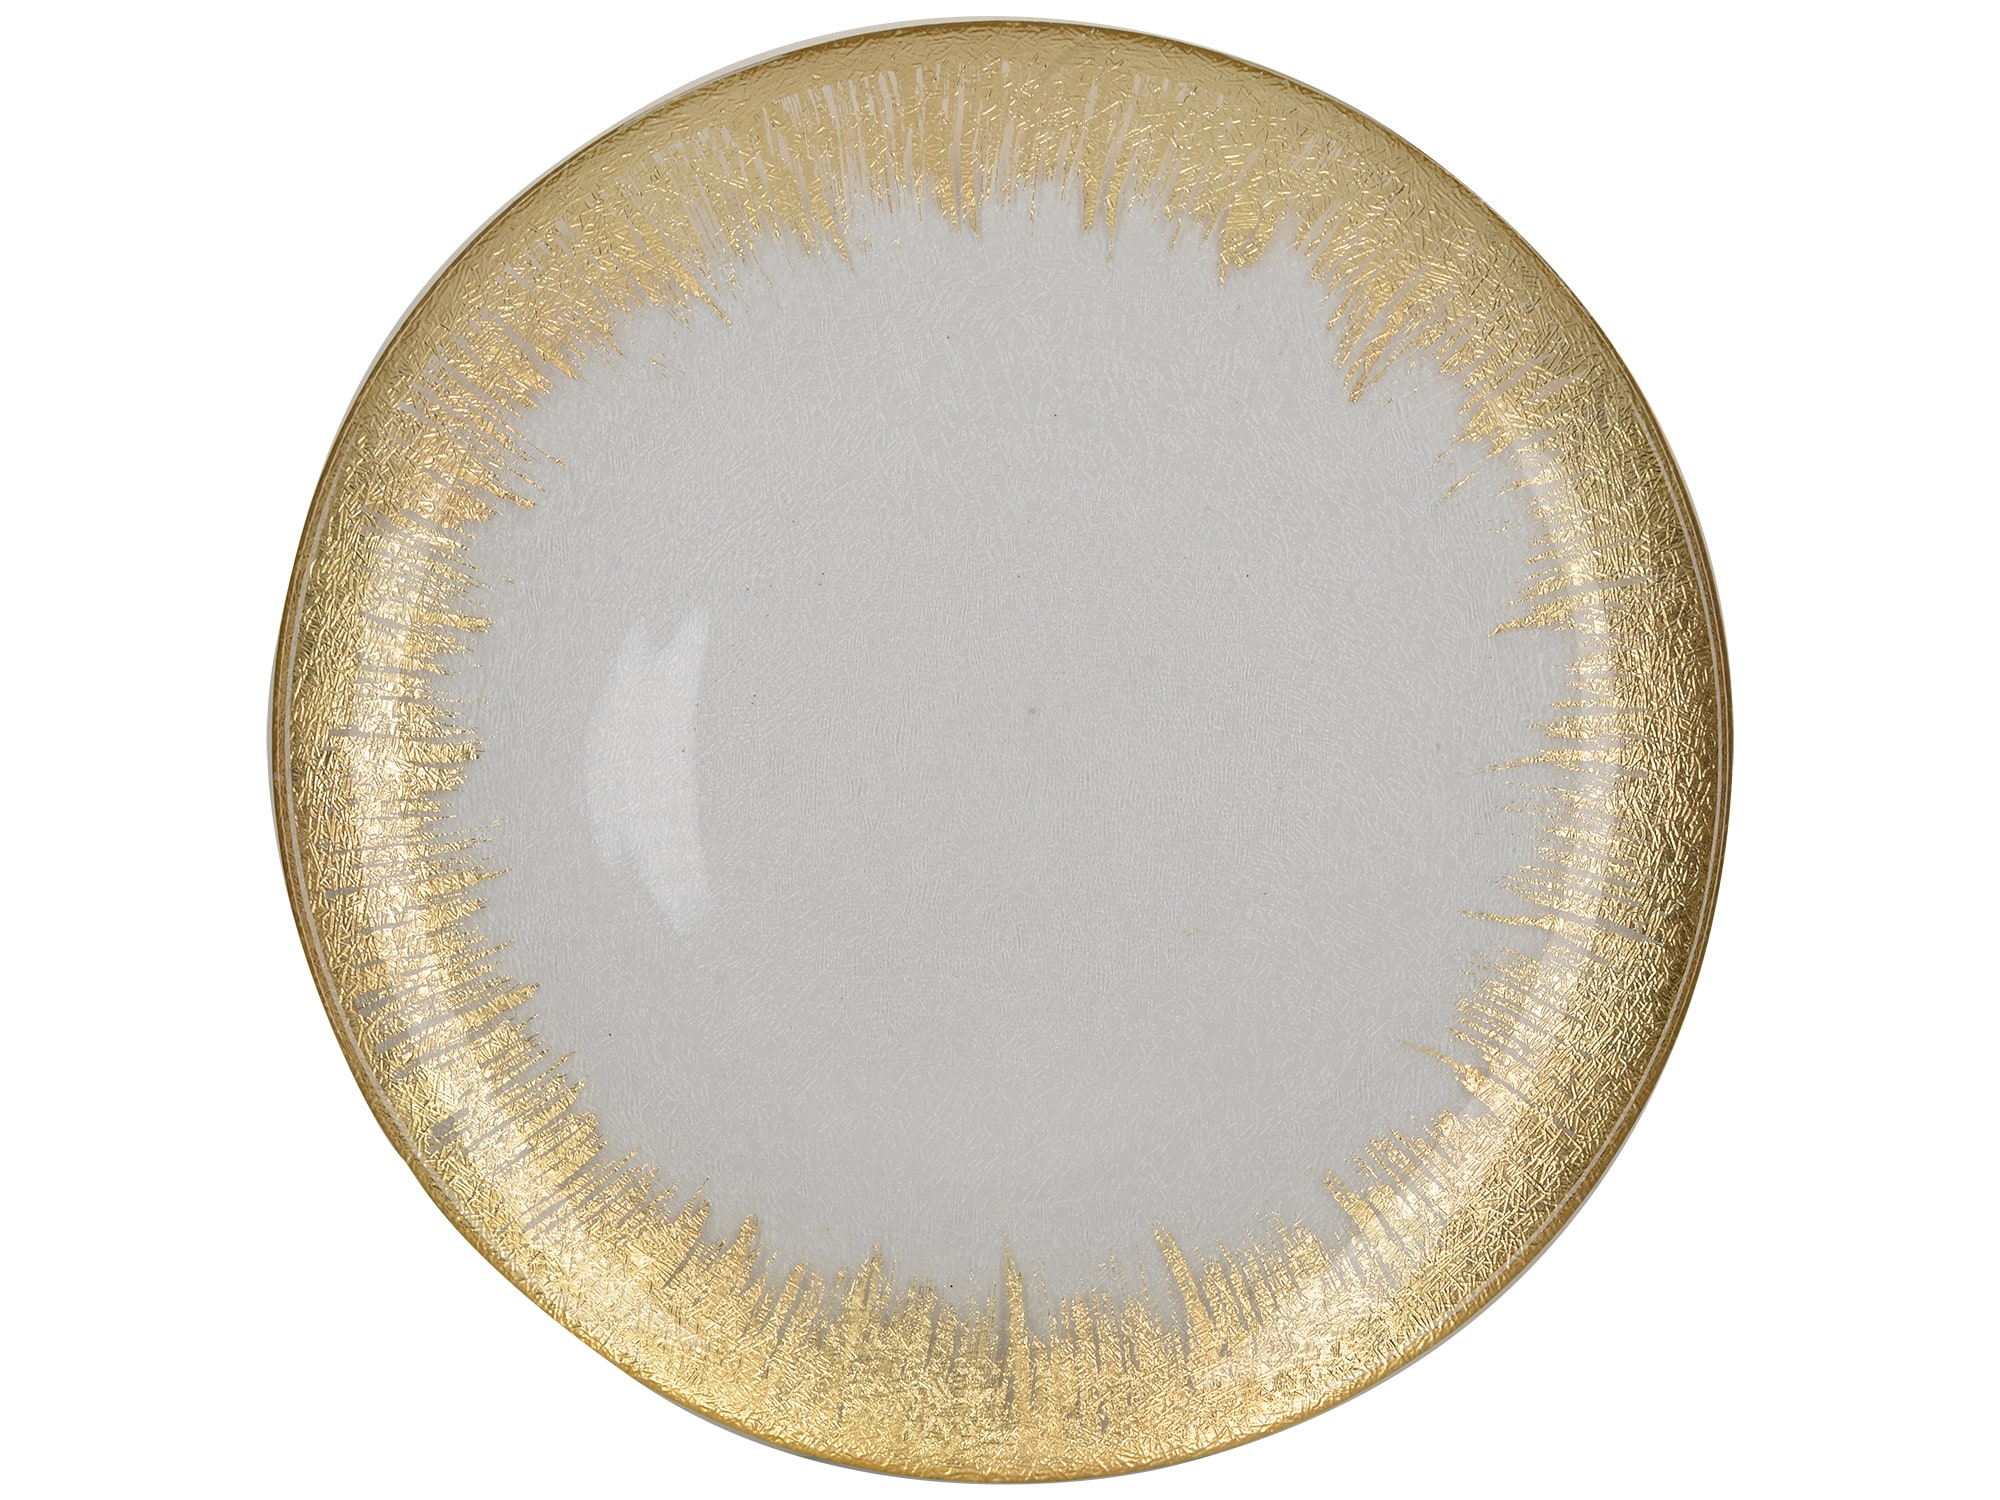 Mikasa Gold Burst Charger Plate